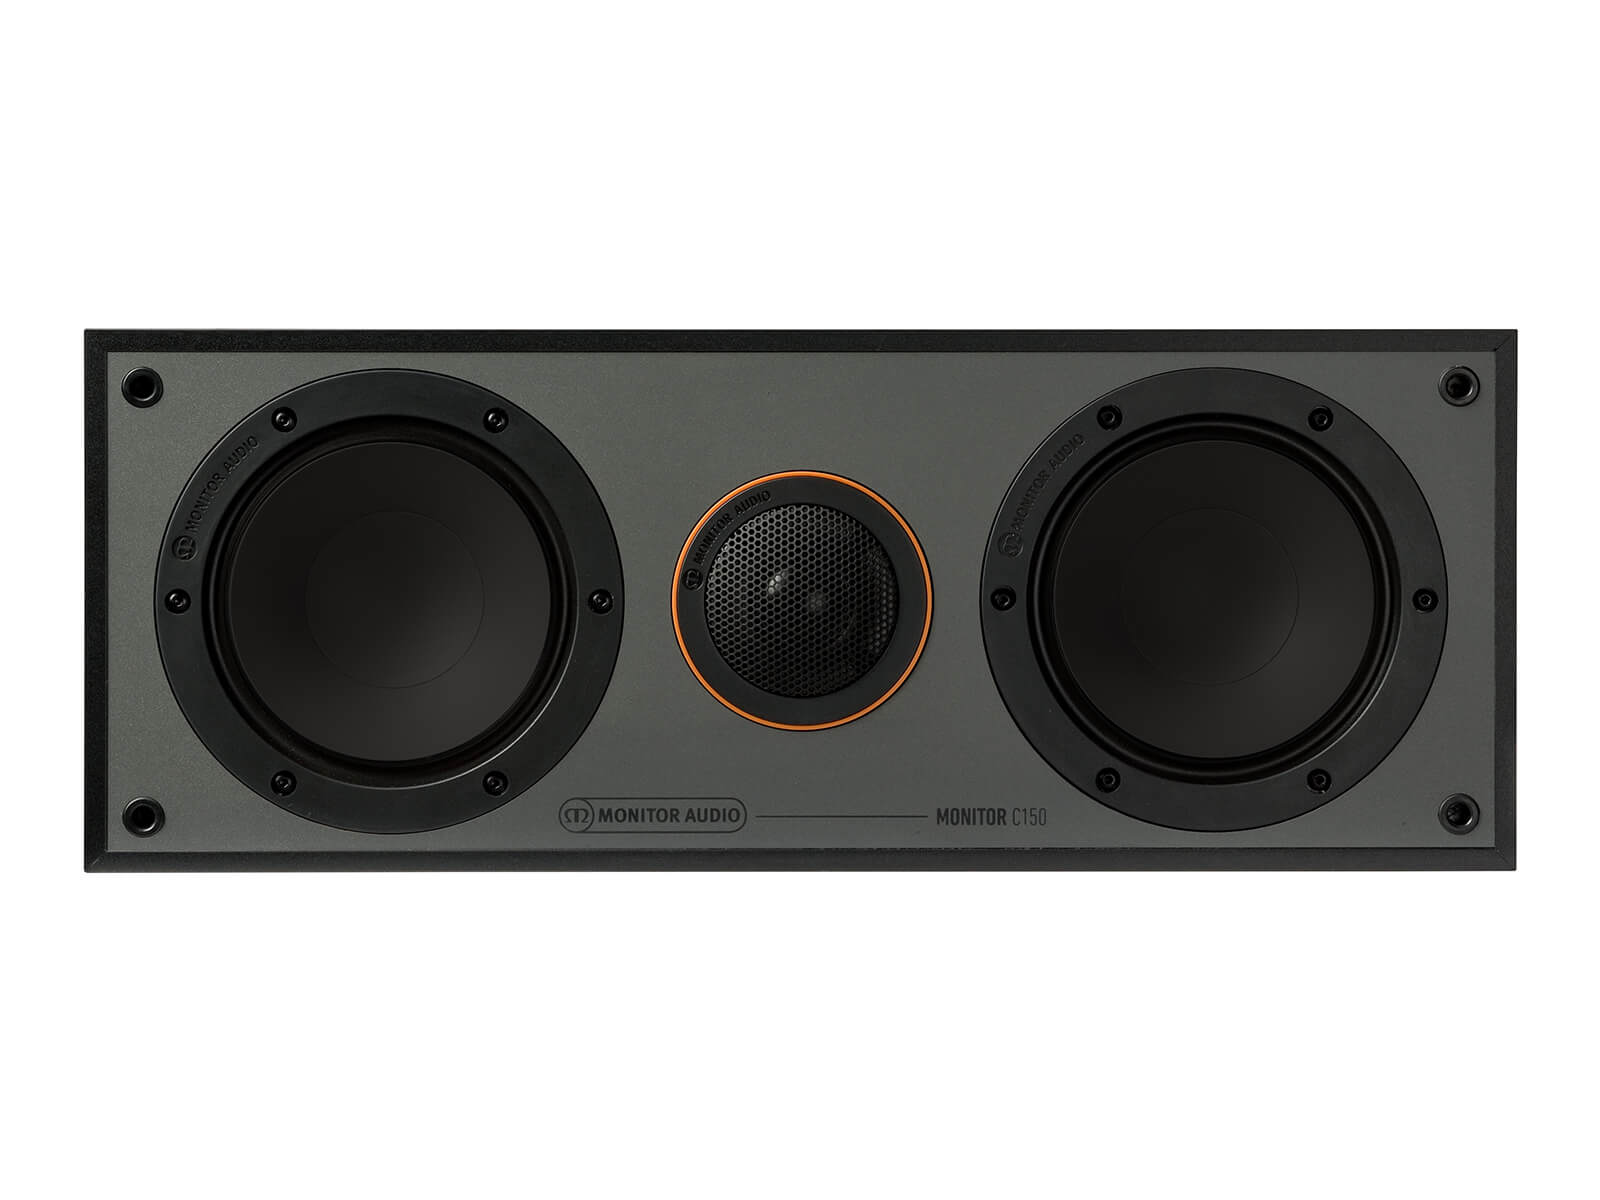 Monitor C150, centre channel speakers, without grille, front on in a black finish.